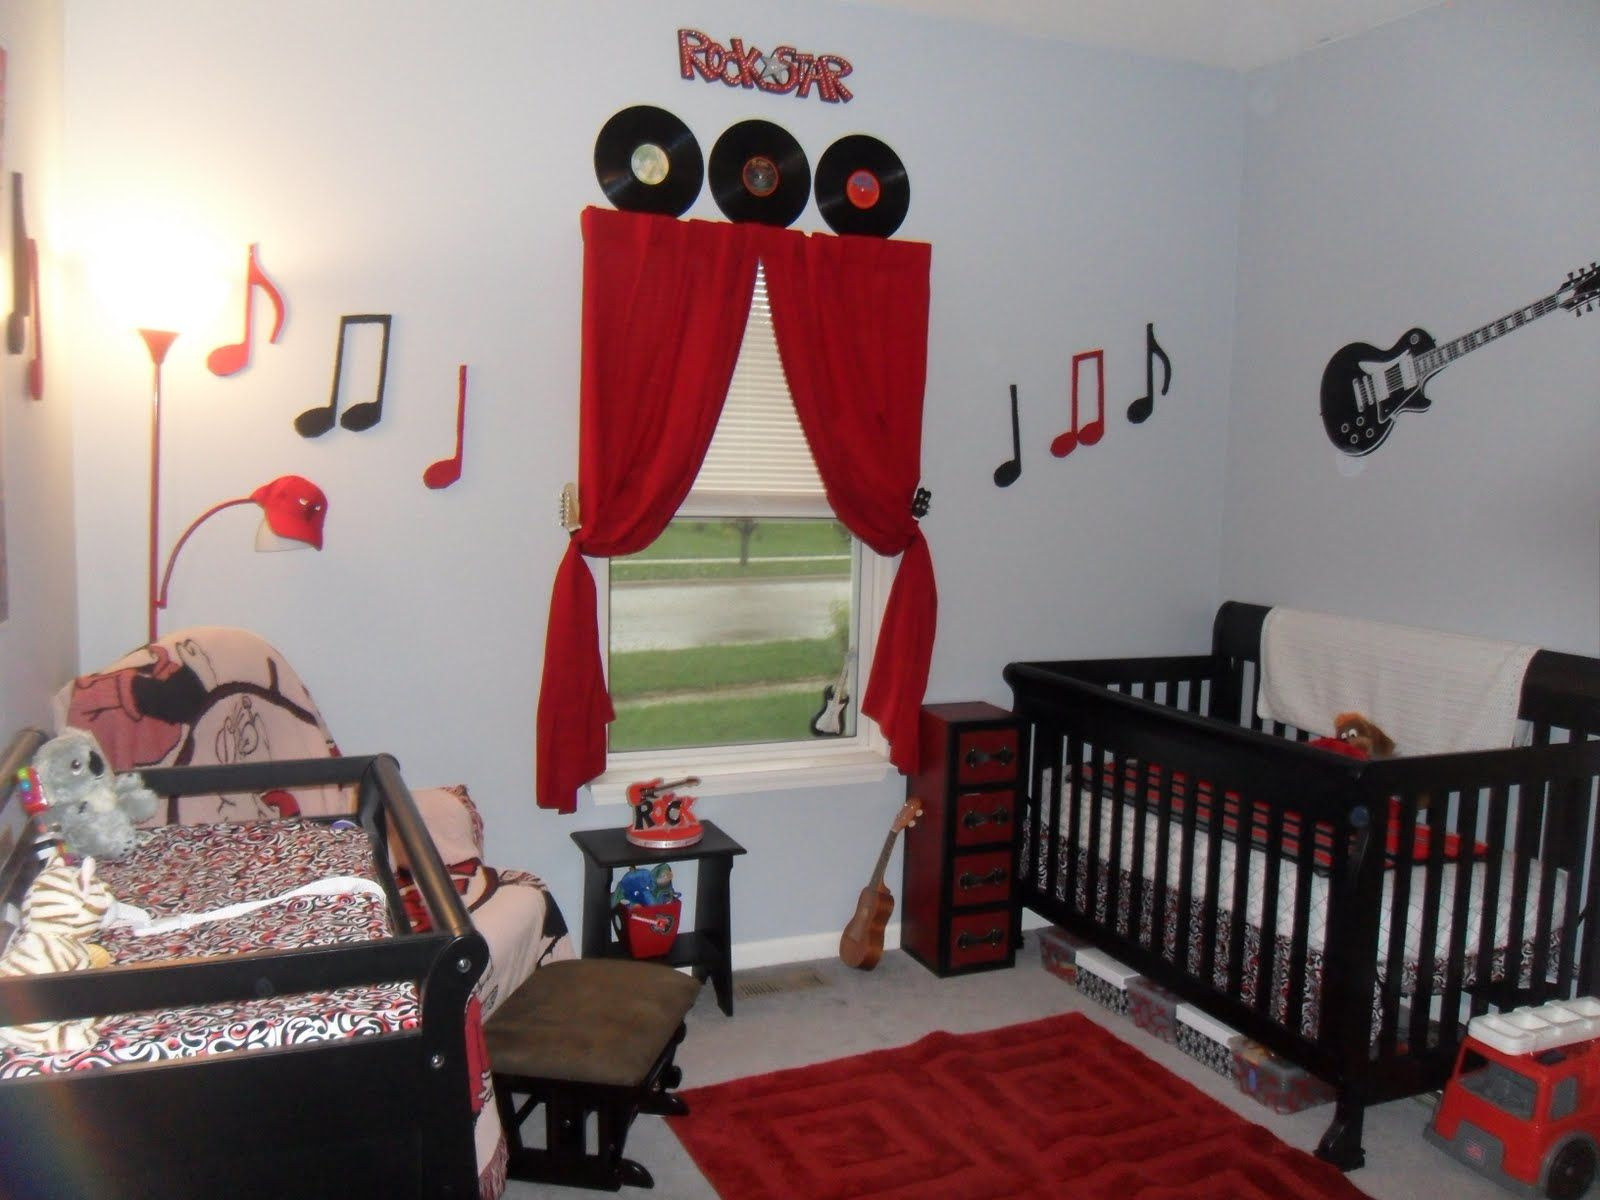 Rock And Roll Baby Room But In Lime Green, Teal And Black